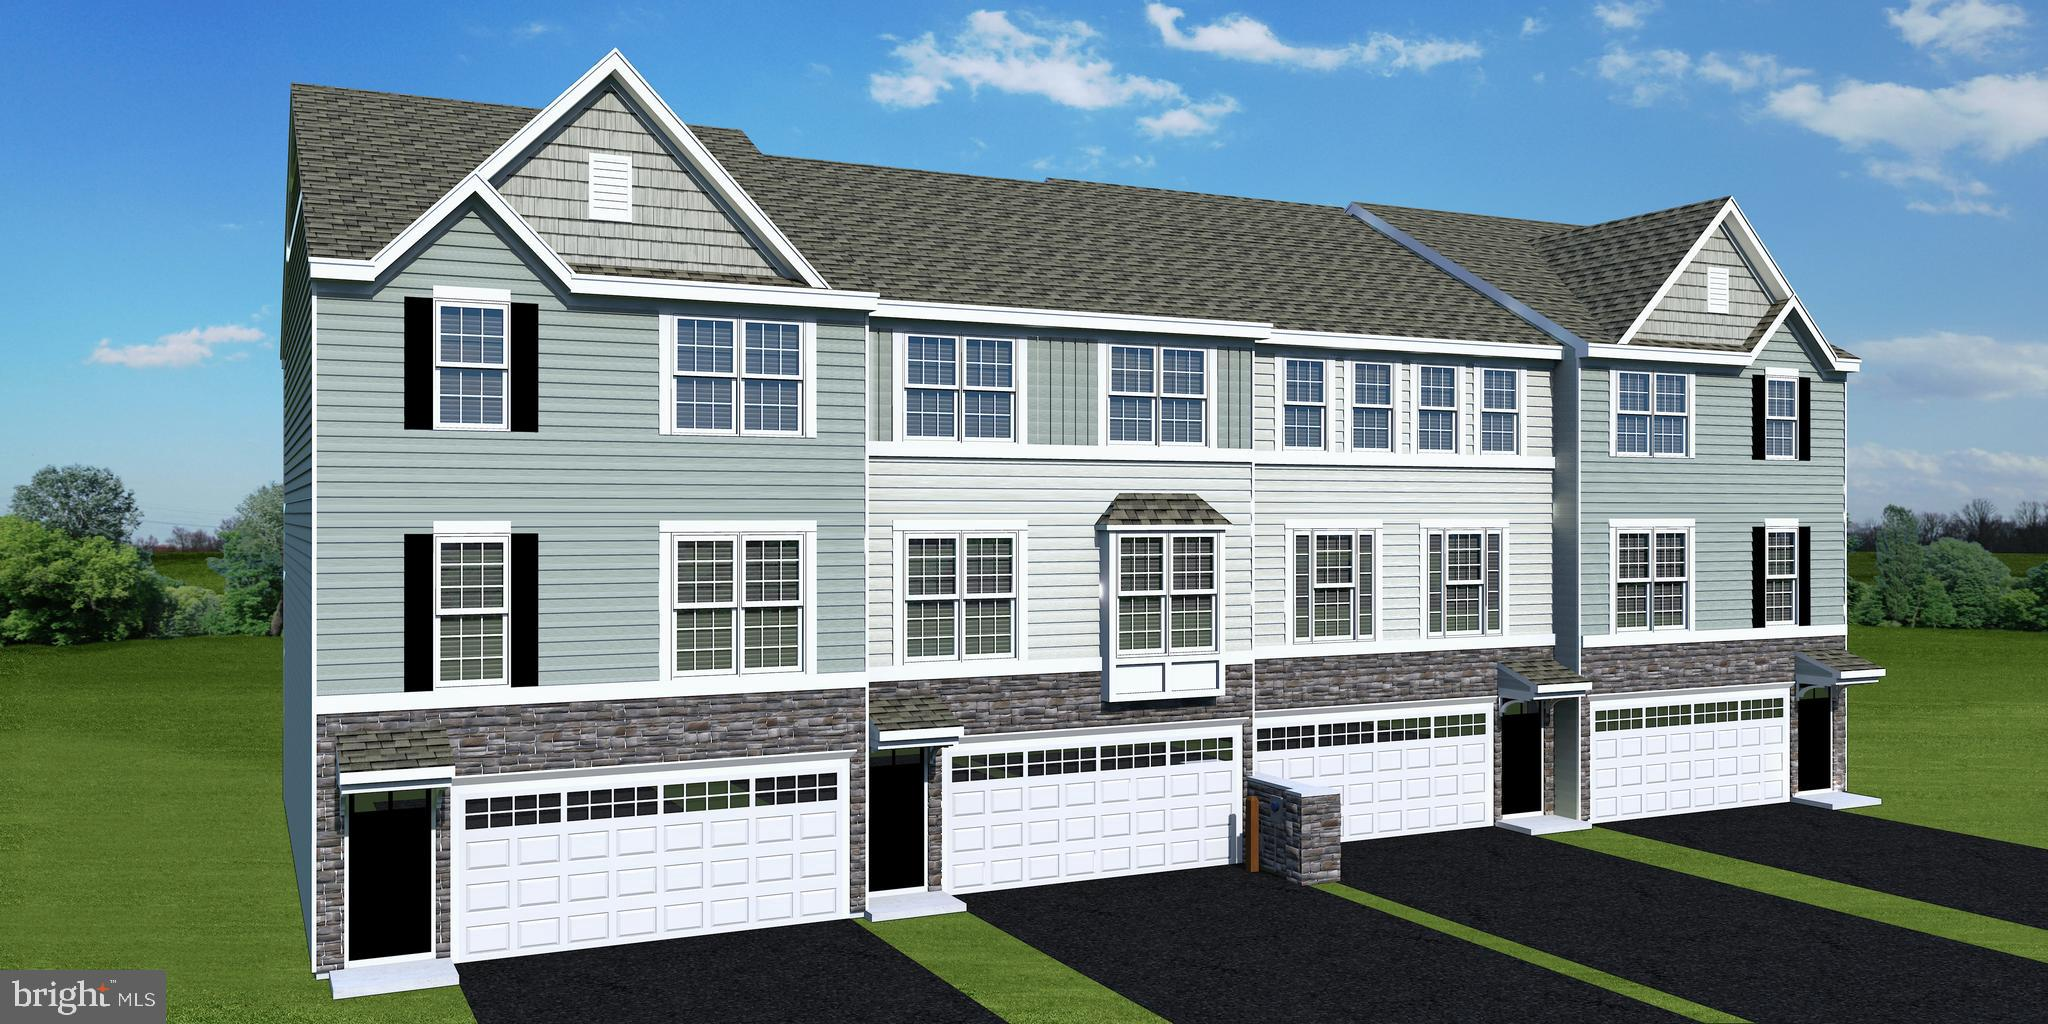 Great Opportunity with New Castle County Workforce Program! Spacious new garage townhome at attractive price.  The Dewey model has 1,830 square feet, and 3 above-ground levels.  The main floor has 9' ceilings, and features a new open kitchen/cafe with an adjacent deck.  The spacious Great Room is off of the kitchen.  The second floor features the owners' bedroom with an en-suite bath and walk-in closet. The second and third bedrooms have easy access to the second full bath.  The lower level has sliding glass doors that give outside access.  The 2 car garage has plenty of space for storage.  The Preserve townhomes back up to open space and are located in the highly sought after Appoquinimink School District.  Thoughtfully included is rough in plumbing for a future powder room on the lower level. All of this, and your own yard too! WOW! (income limits apply...call sales office for details).  Photos may be of a similar or furnished model home.